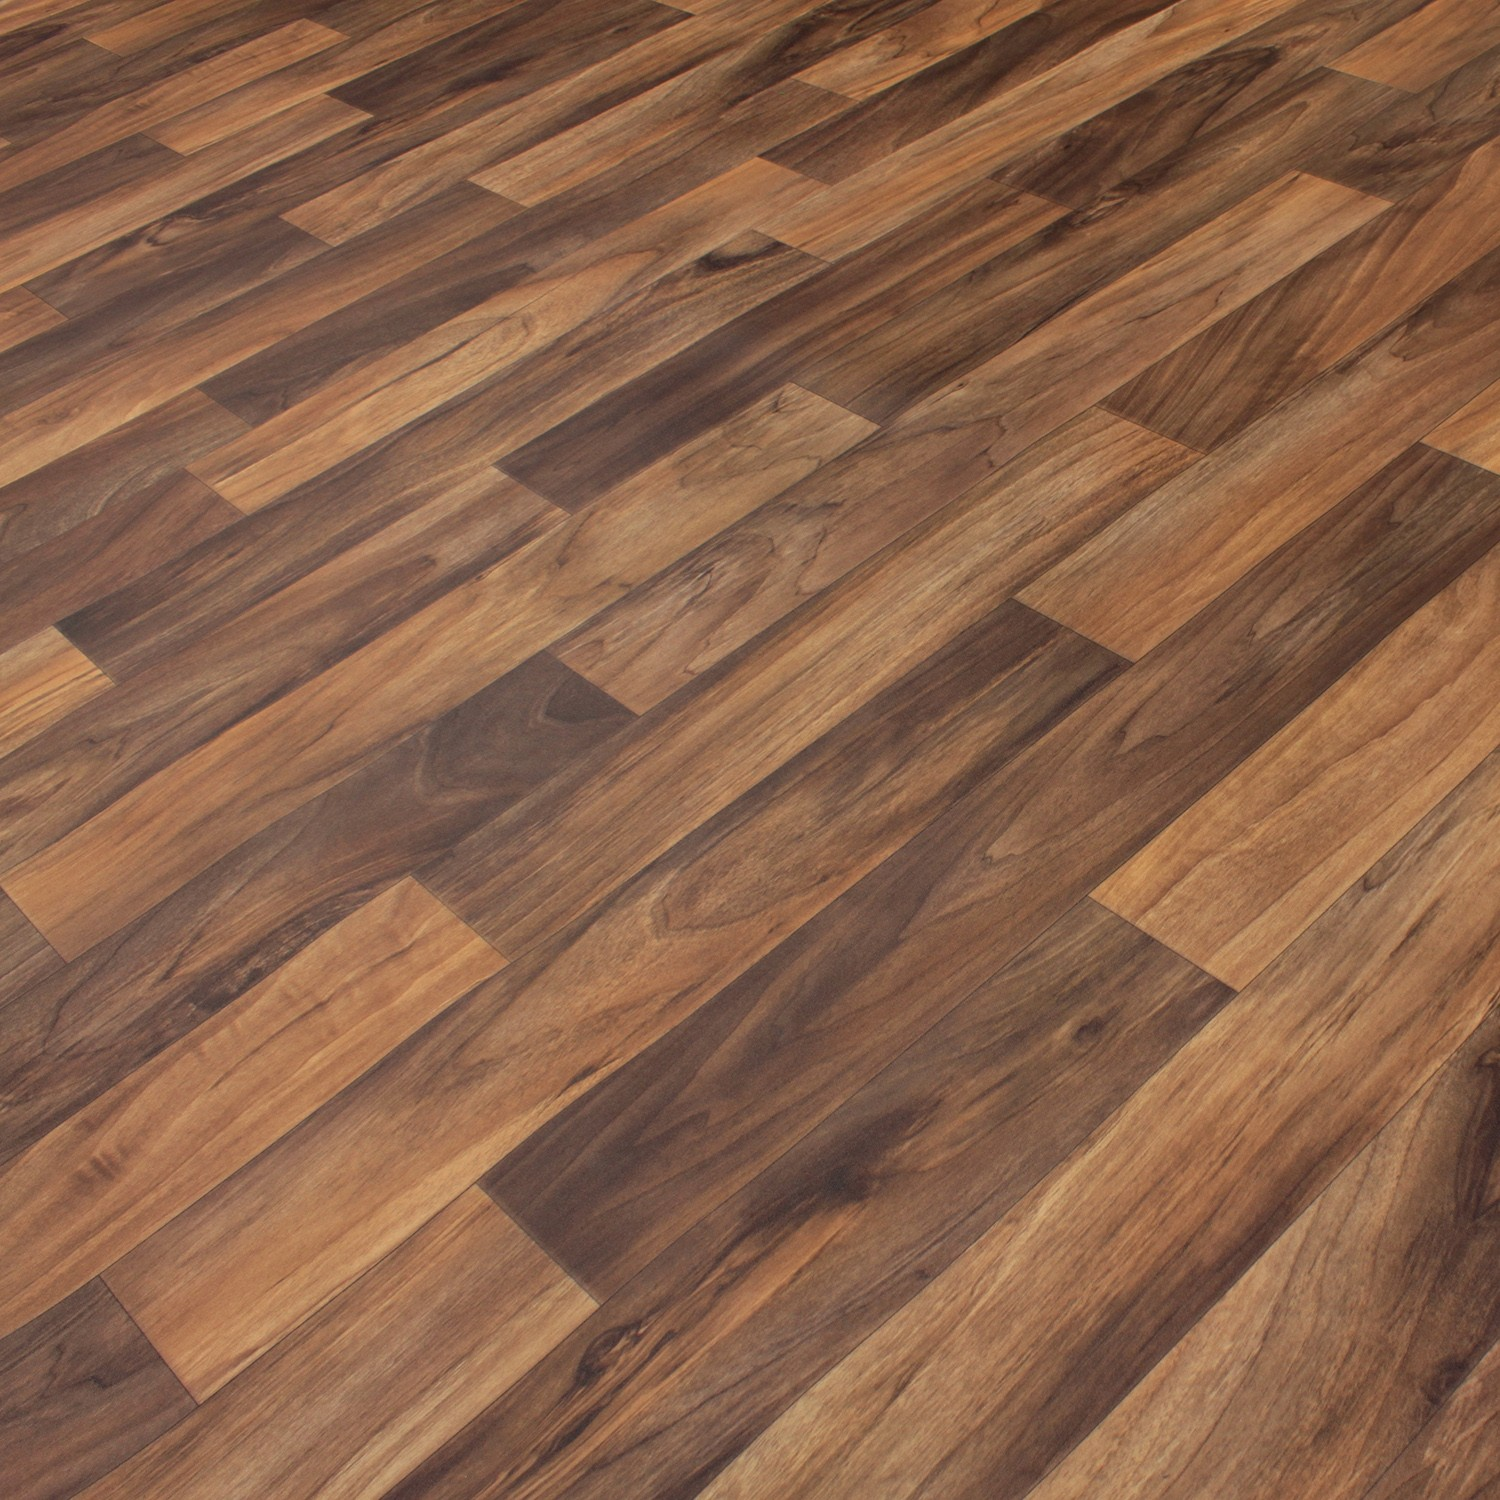 2m wide high quality vinyl flooring dark wood designs for Dark wood vinyl flooring